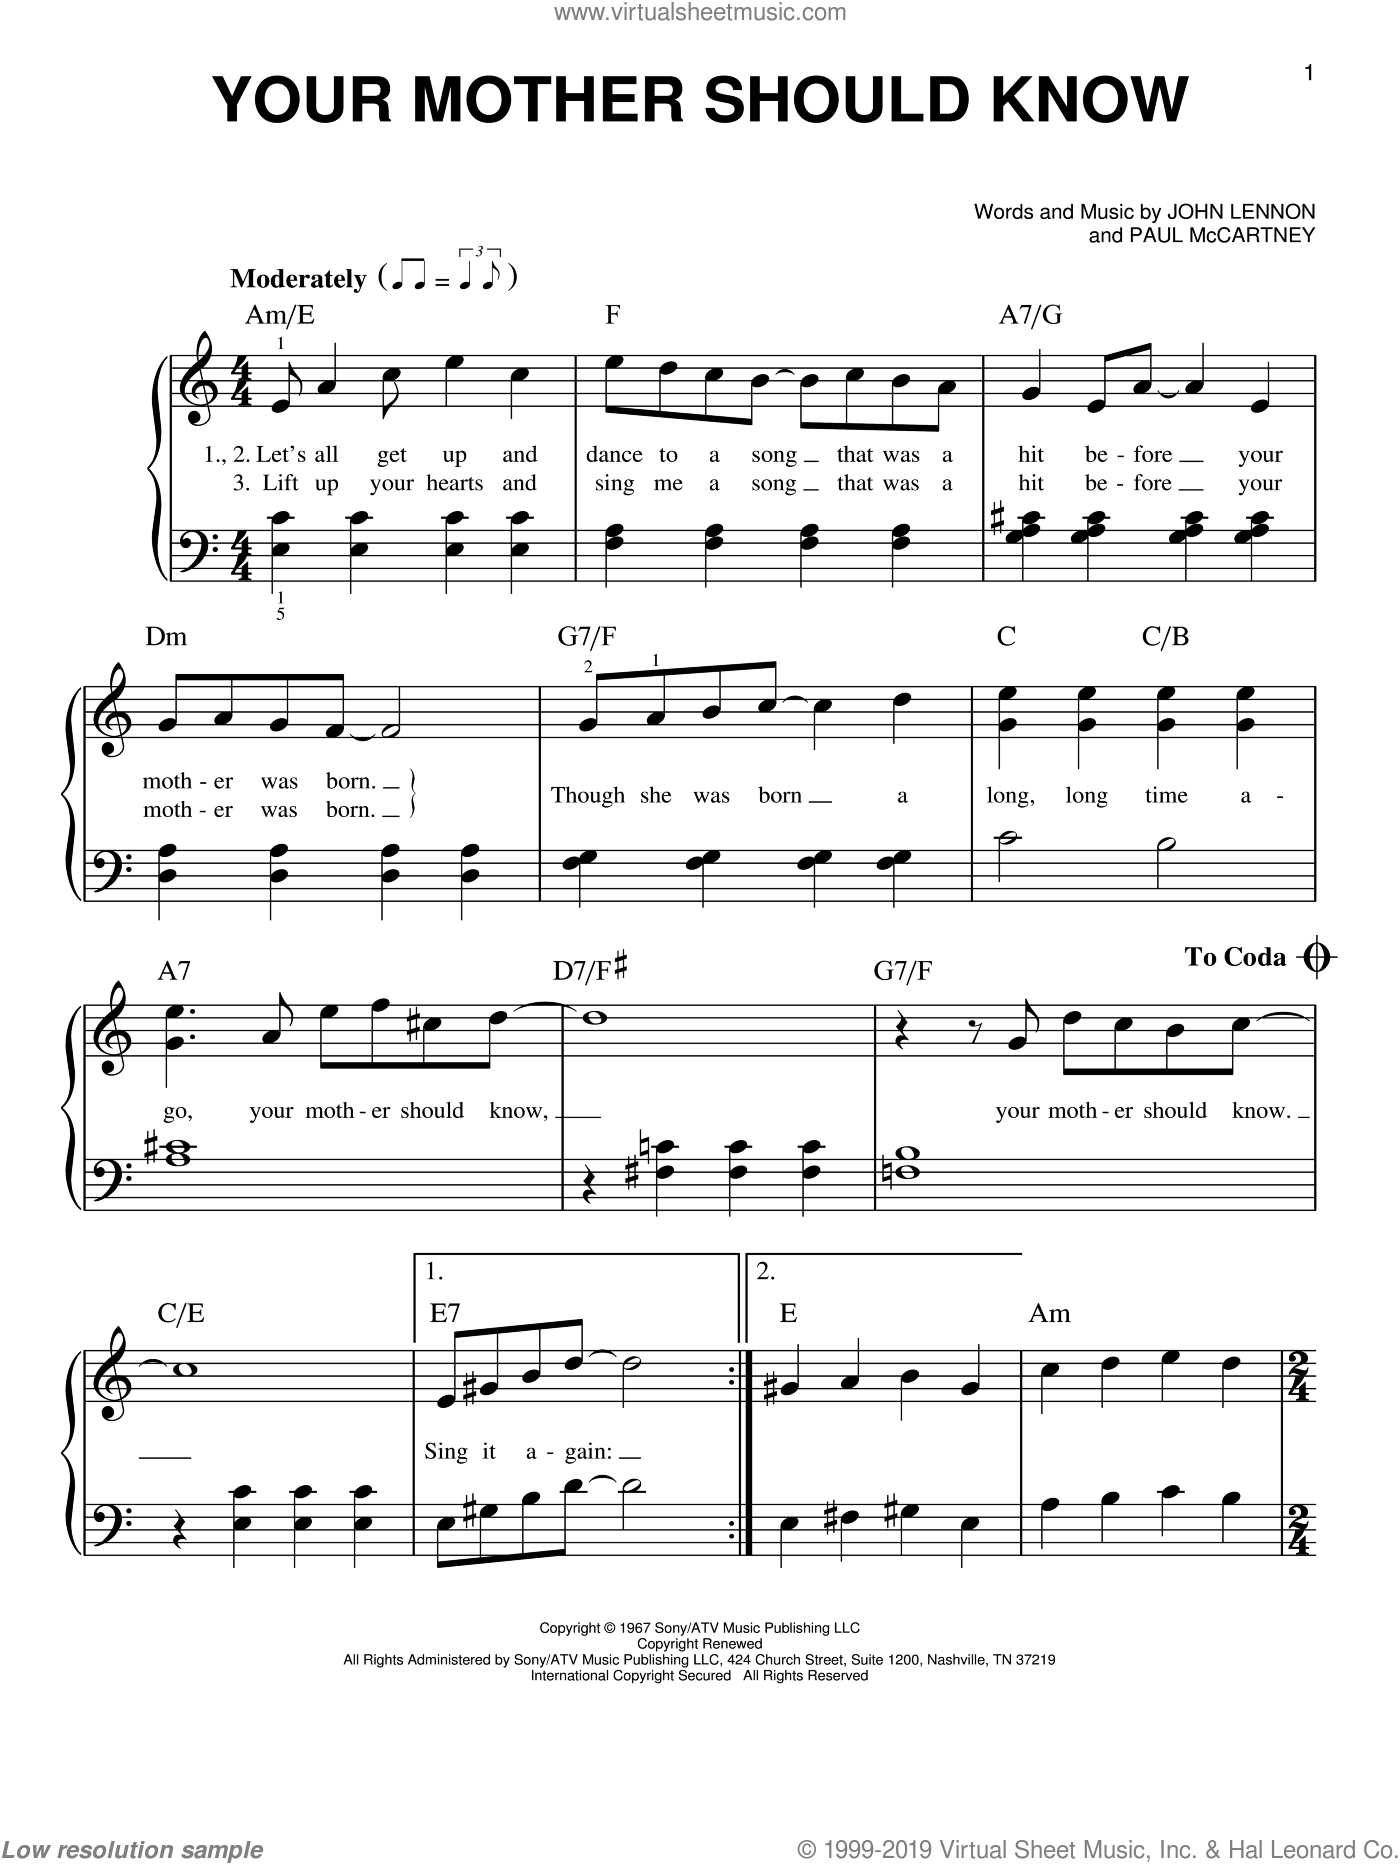 Your Mother Should Know sheet music for piano solo by The Beatles, John Lennon and Paul McCartney, easy skill level